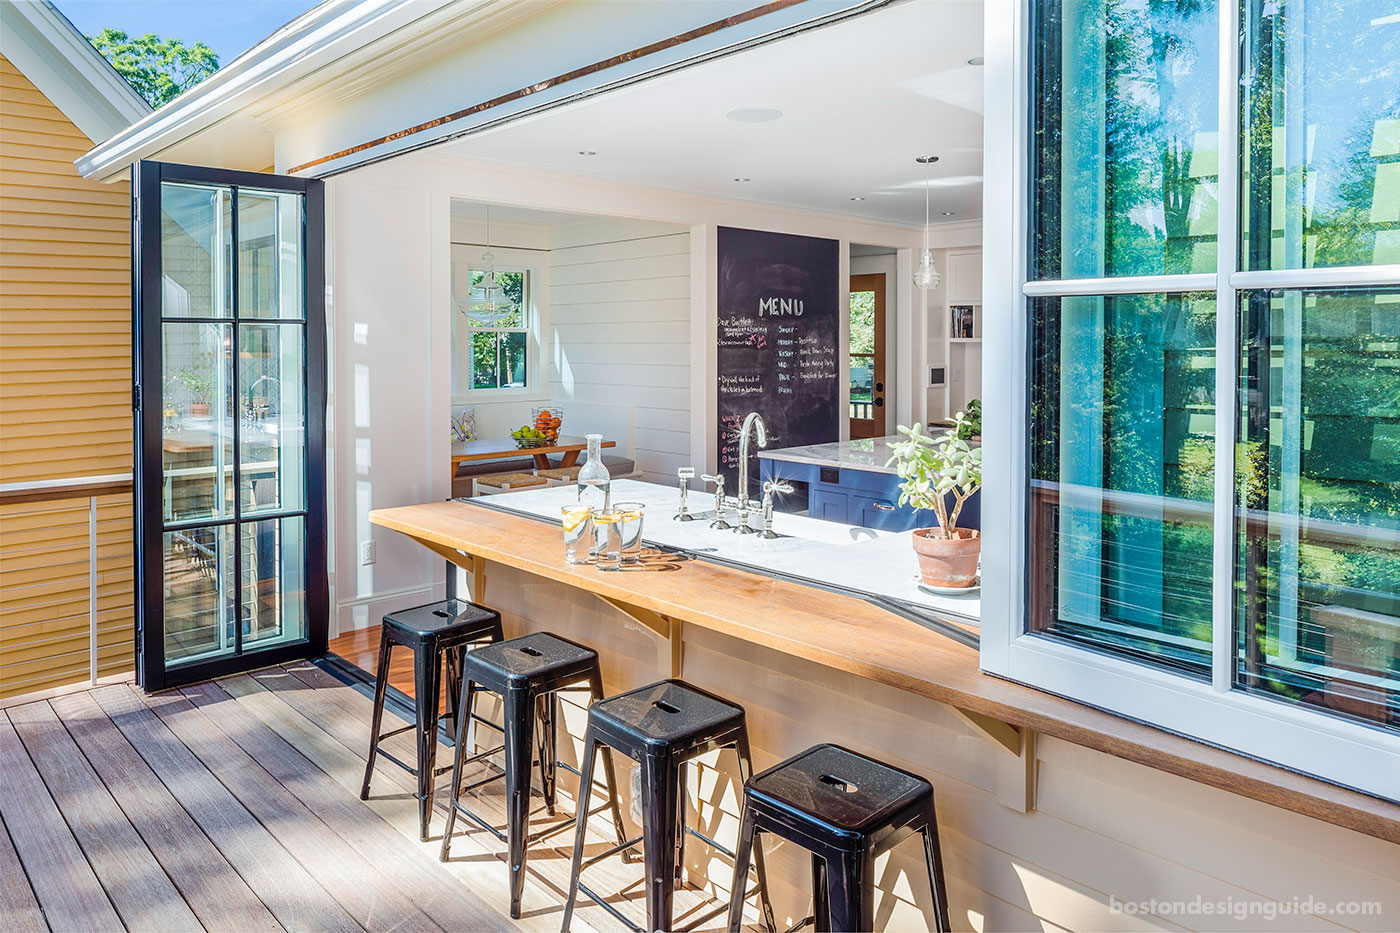 Indoor/outdoor kitchen by JW Construction